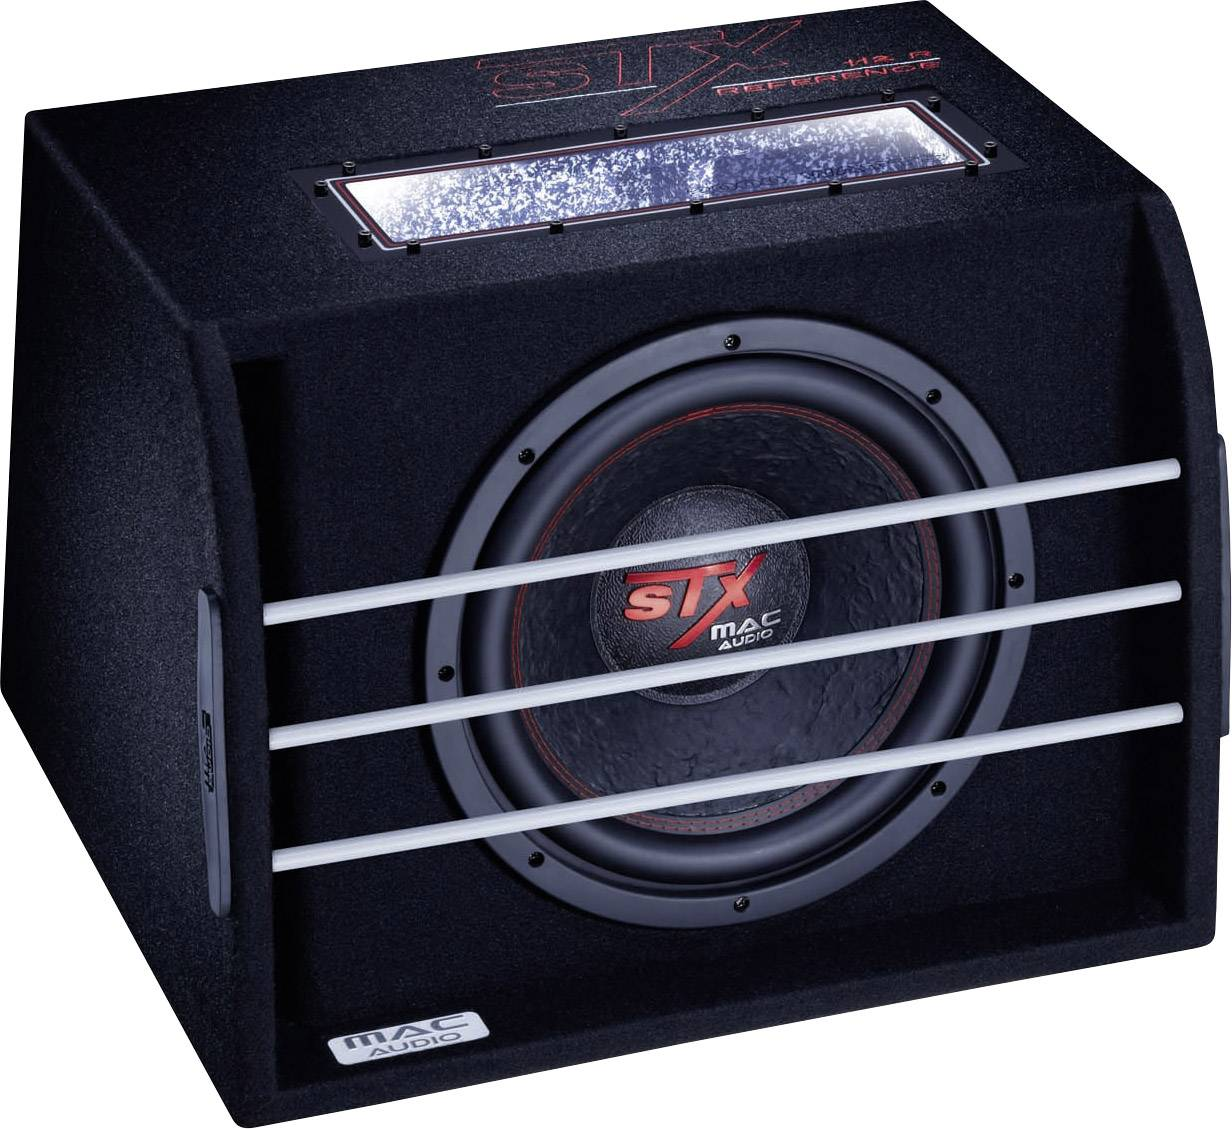 Pasívny subwoofer do auta Mac Audio STX 112 R Reference, 2000 W